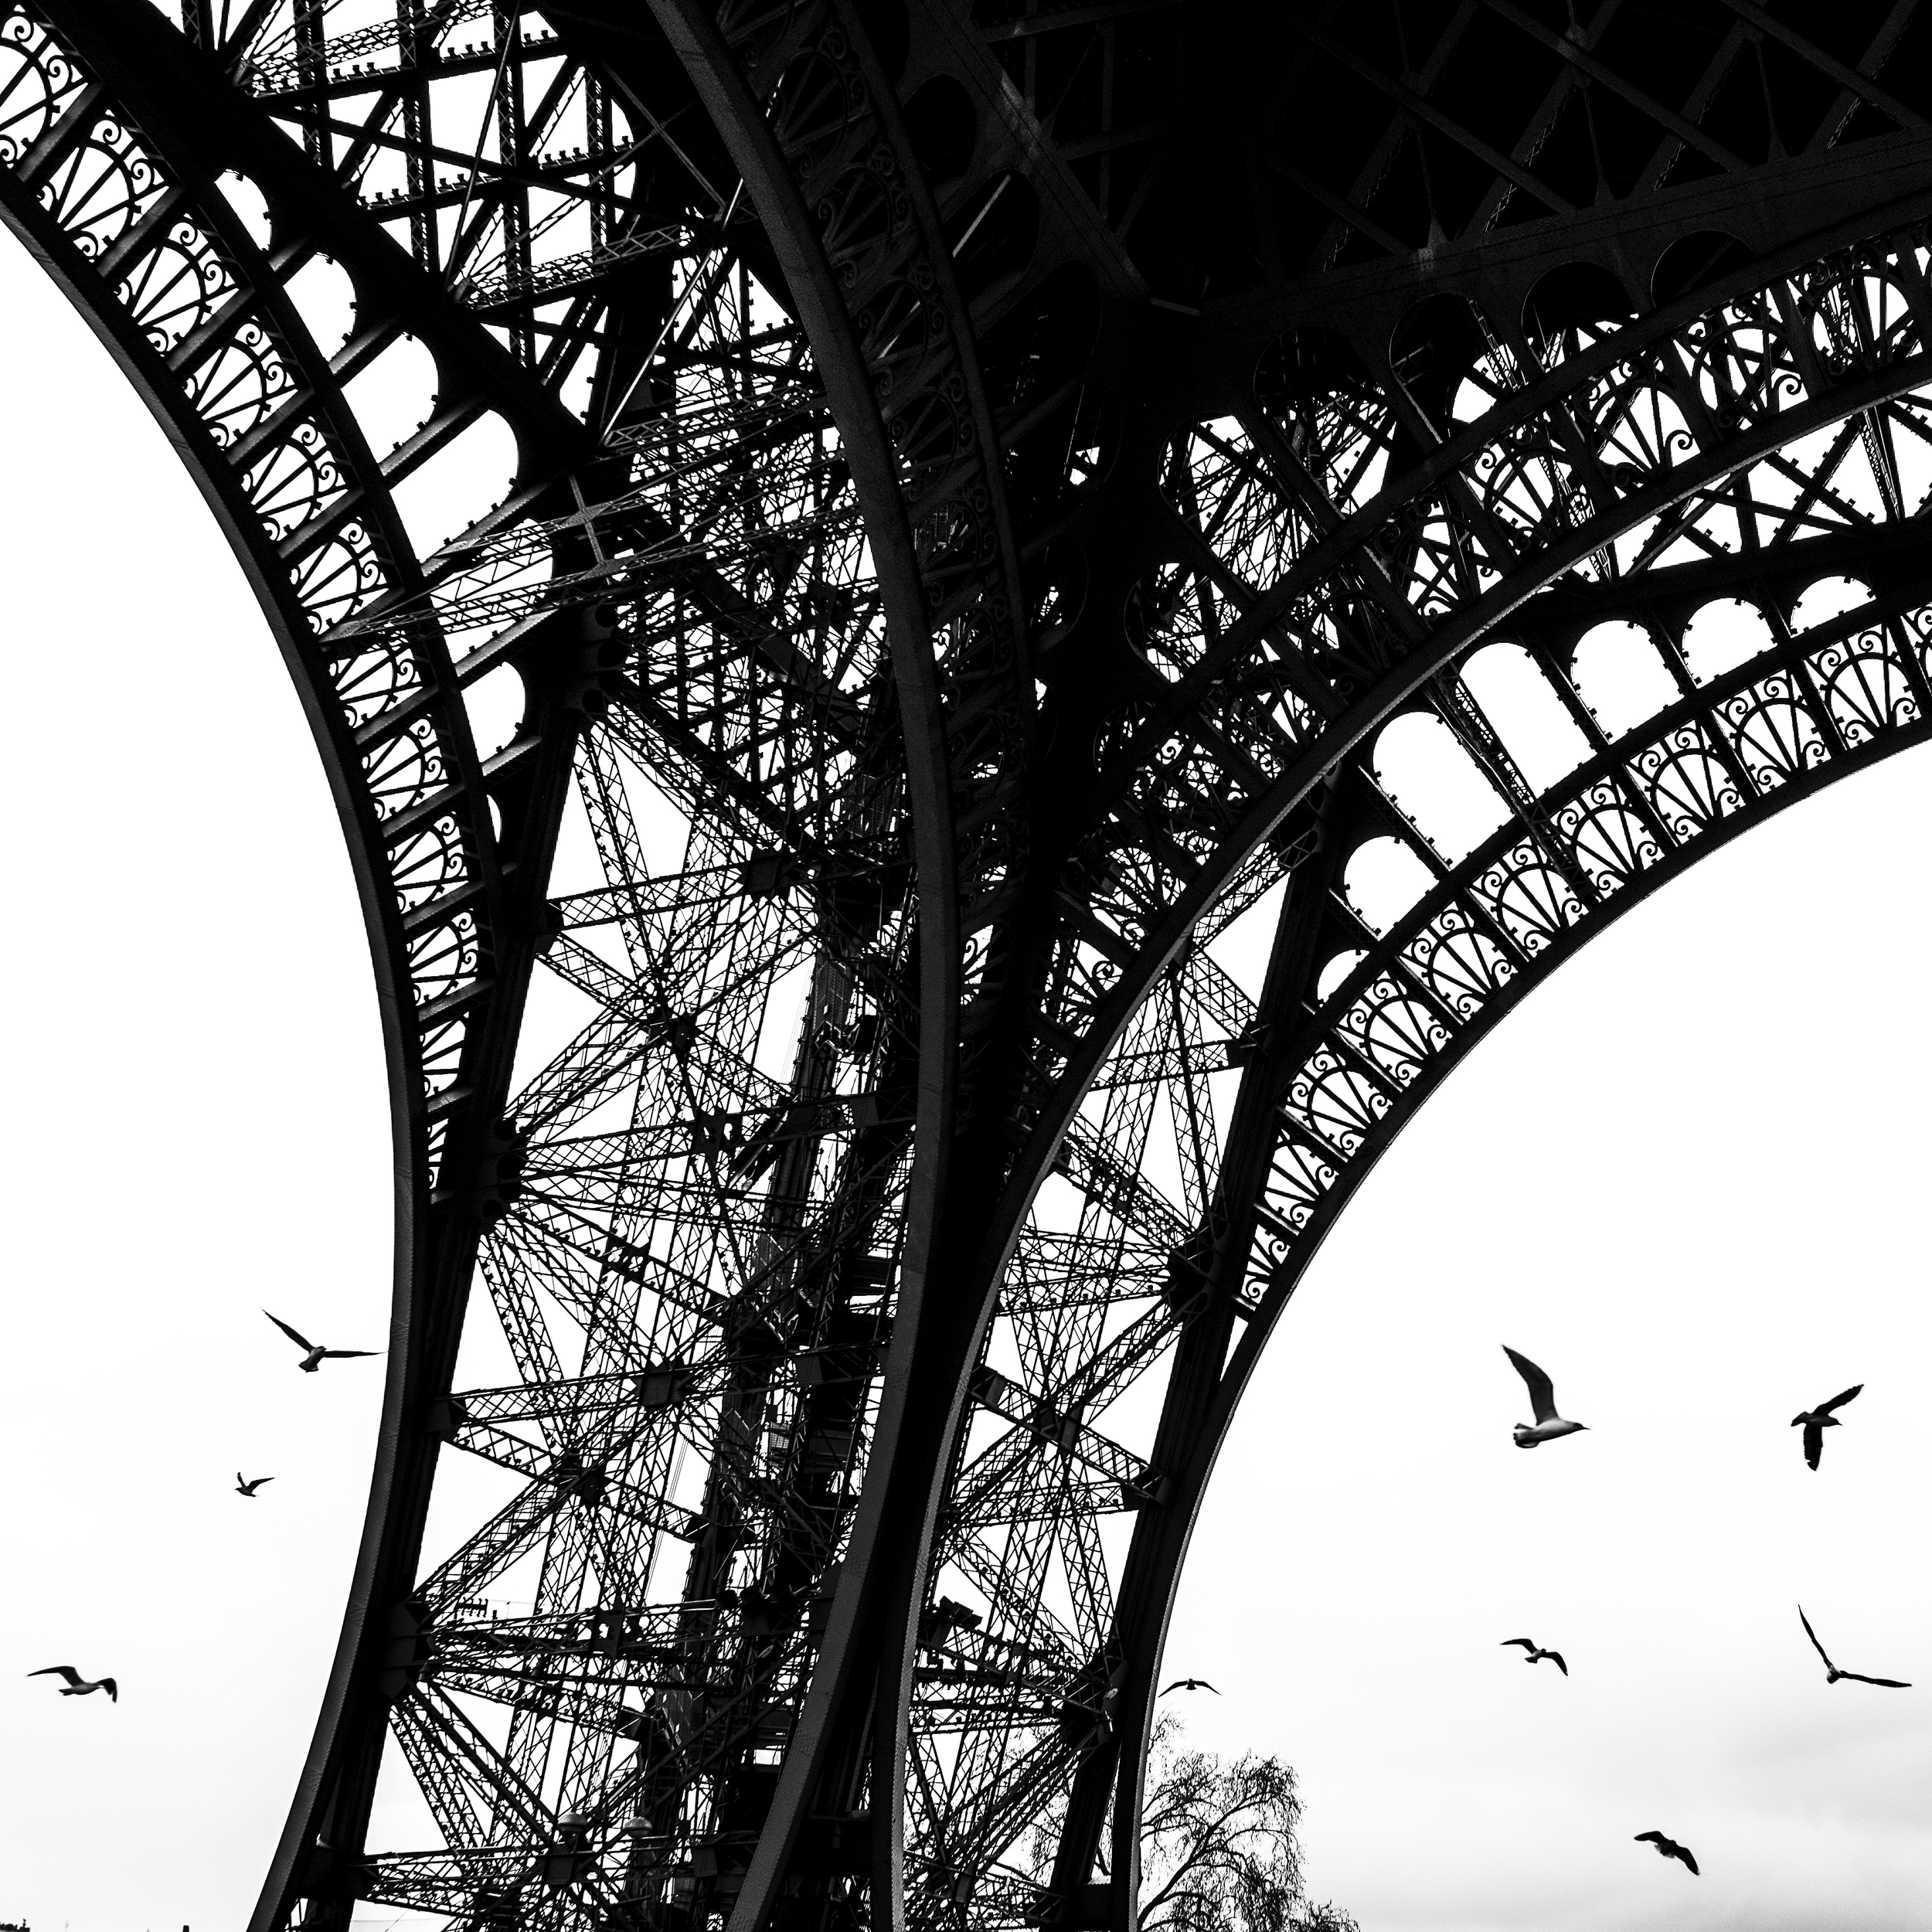 The Leica SL produces incredibly sharp and detailed images. You can practically zoom in forever on the details of the metal framing on the Eiffel Tower in this photograph.